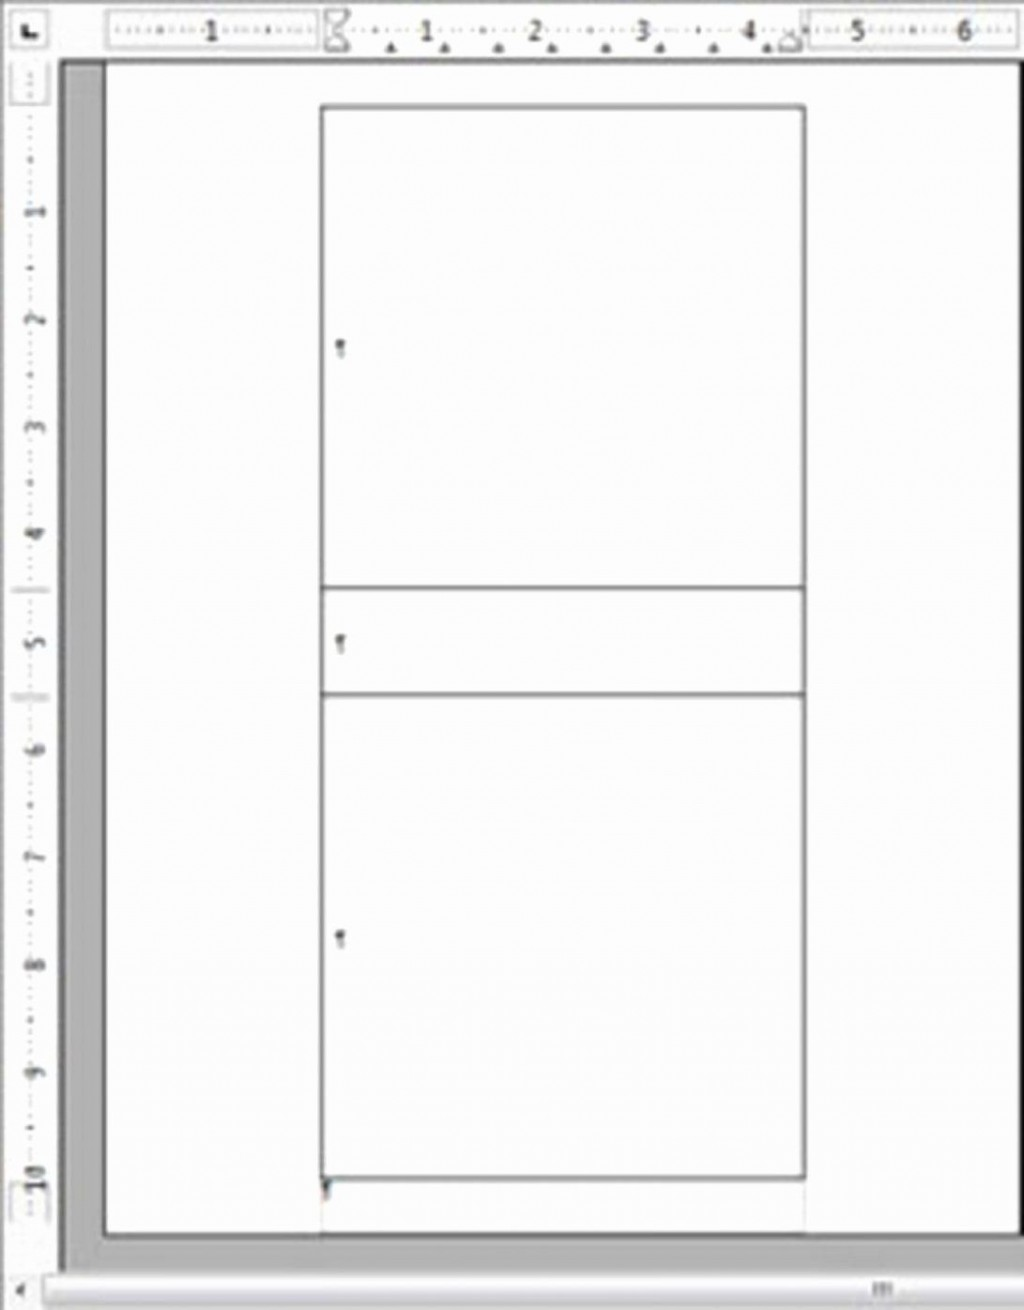 002 Impressive Microsoft Word Addres Label Template 30 Per Sheet Example Large